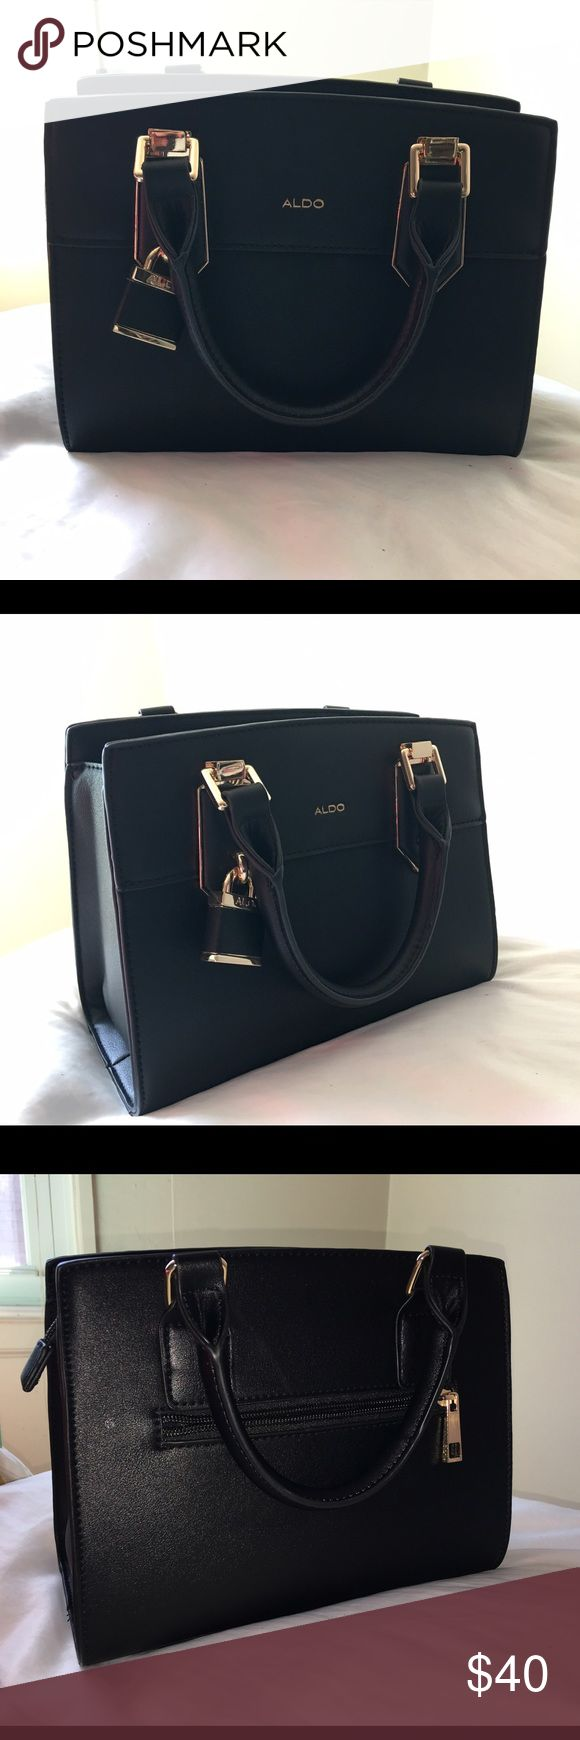 Black Aldo Purse New! Used once. In GREAT condition! From Aldo's new spring collection 2017. Posed next to wallet to get a perspective on size. Black Aldo Bags Mini Bags